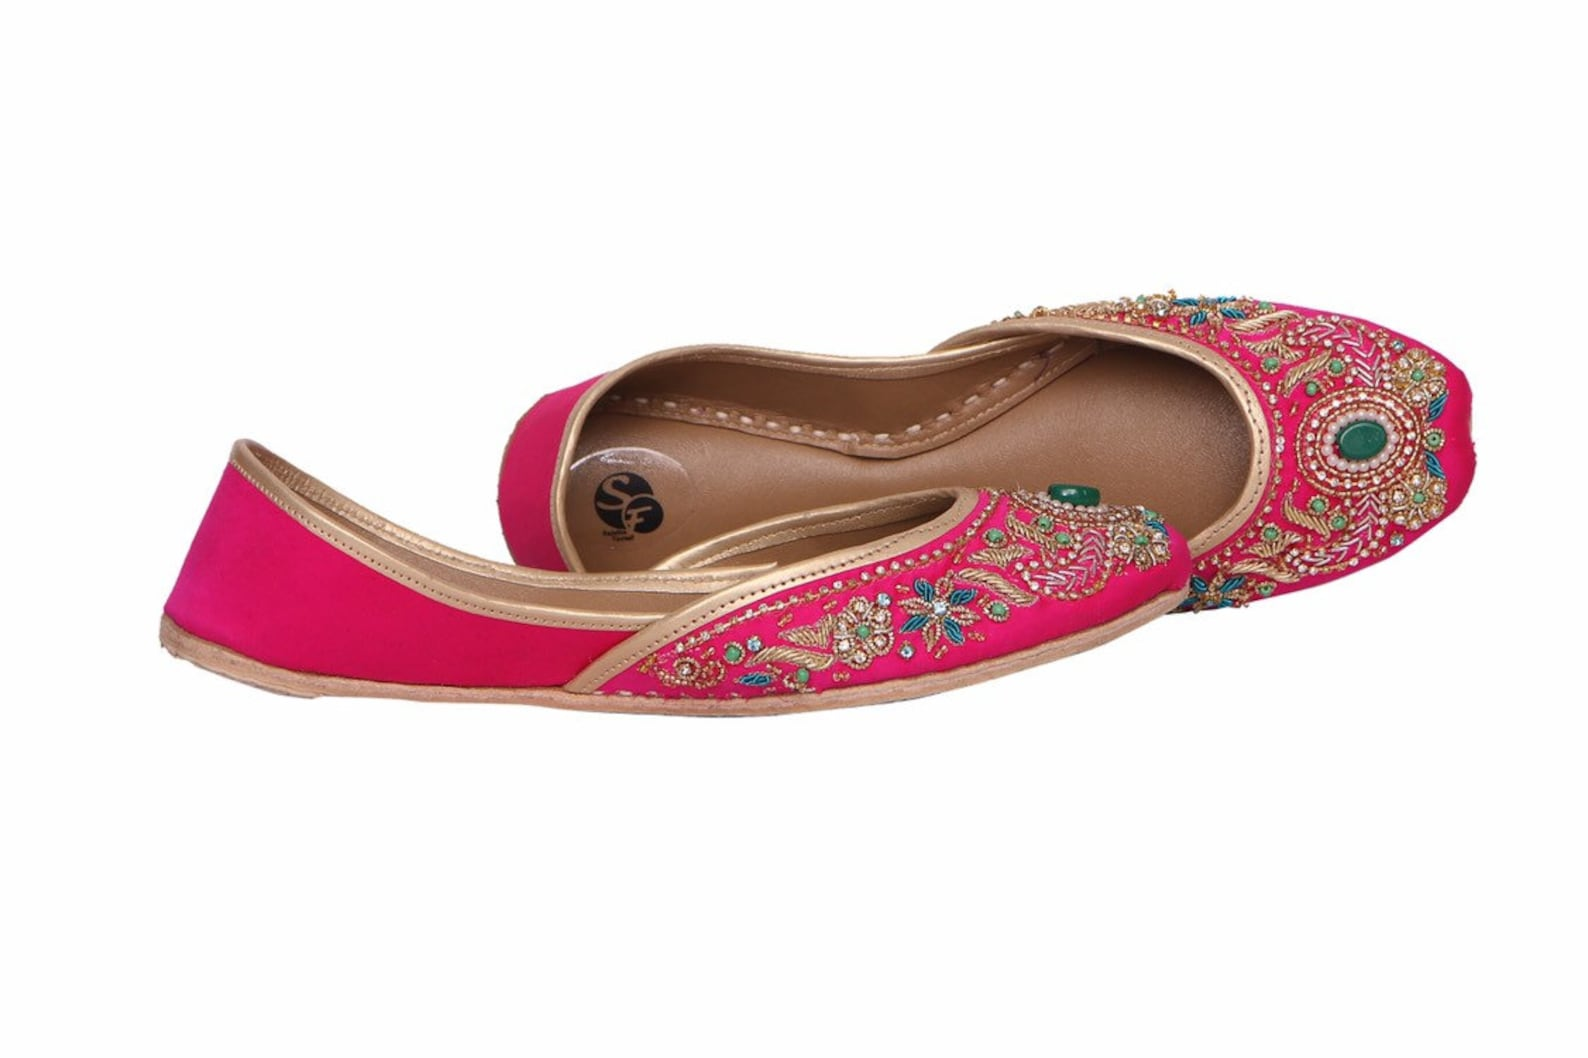 handmade embellished red/ pink women flat shoes ballet flats kundan khussa juti ethnic shoes brooch bridal shoes mojari indian j